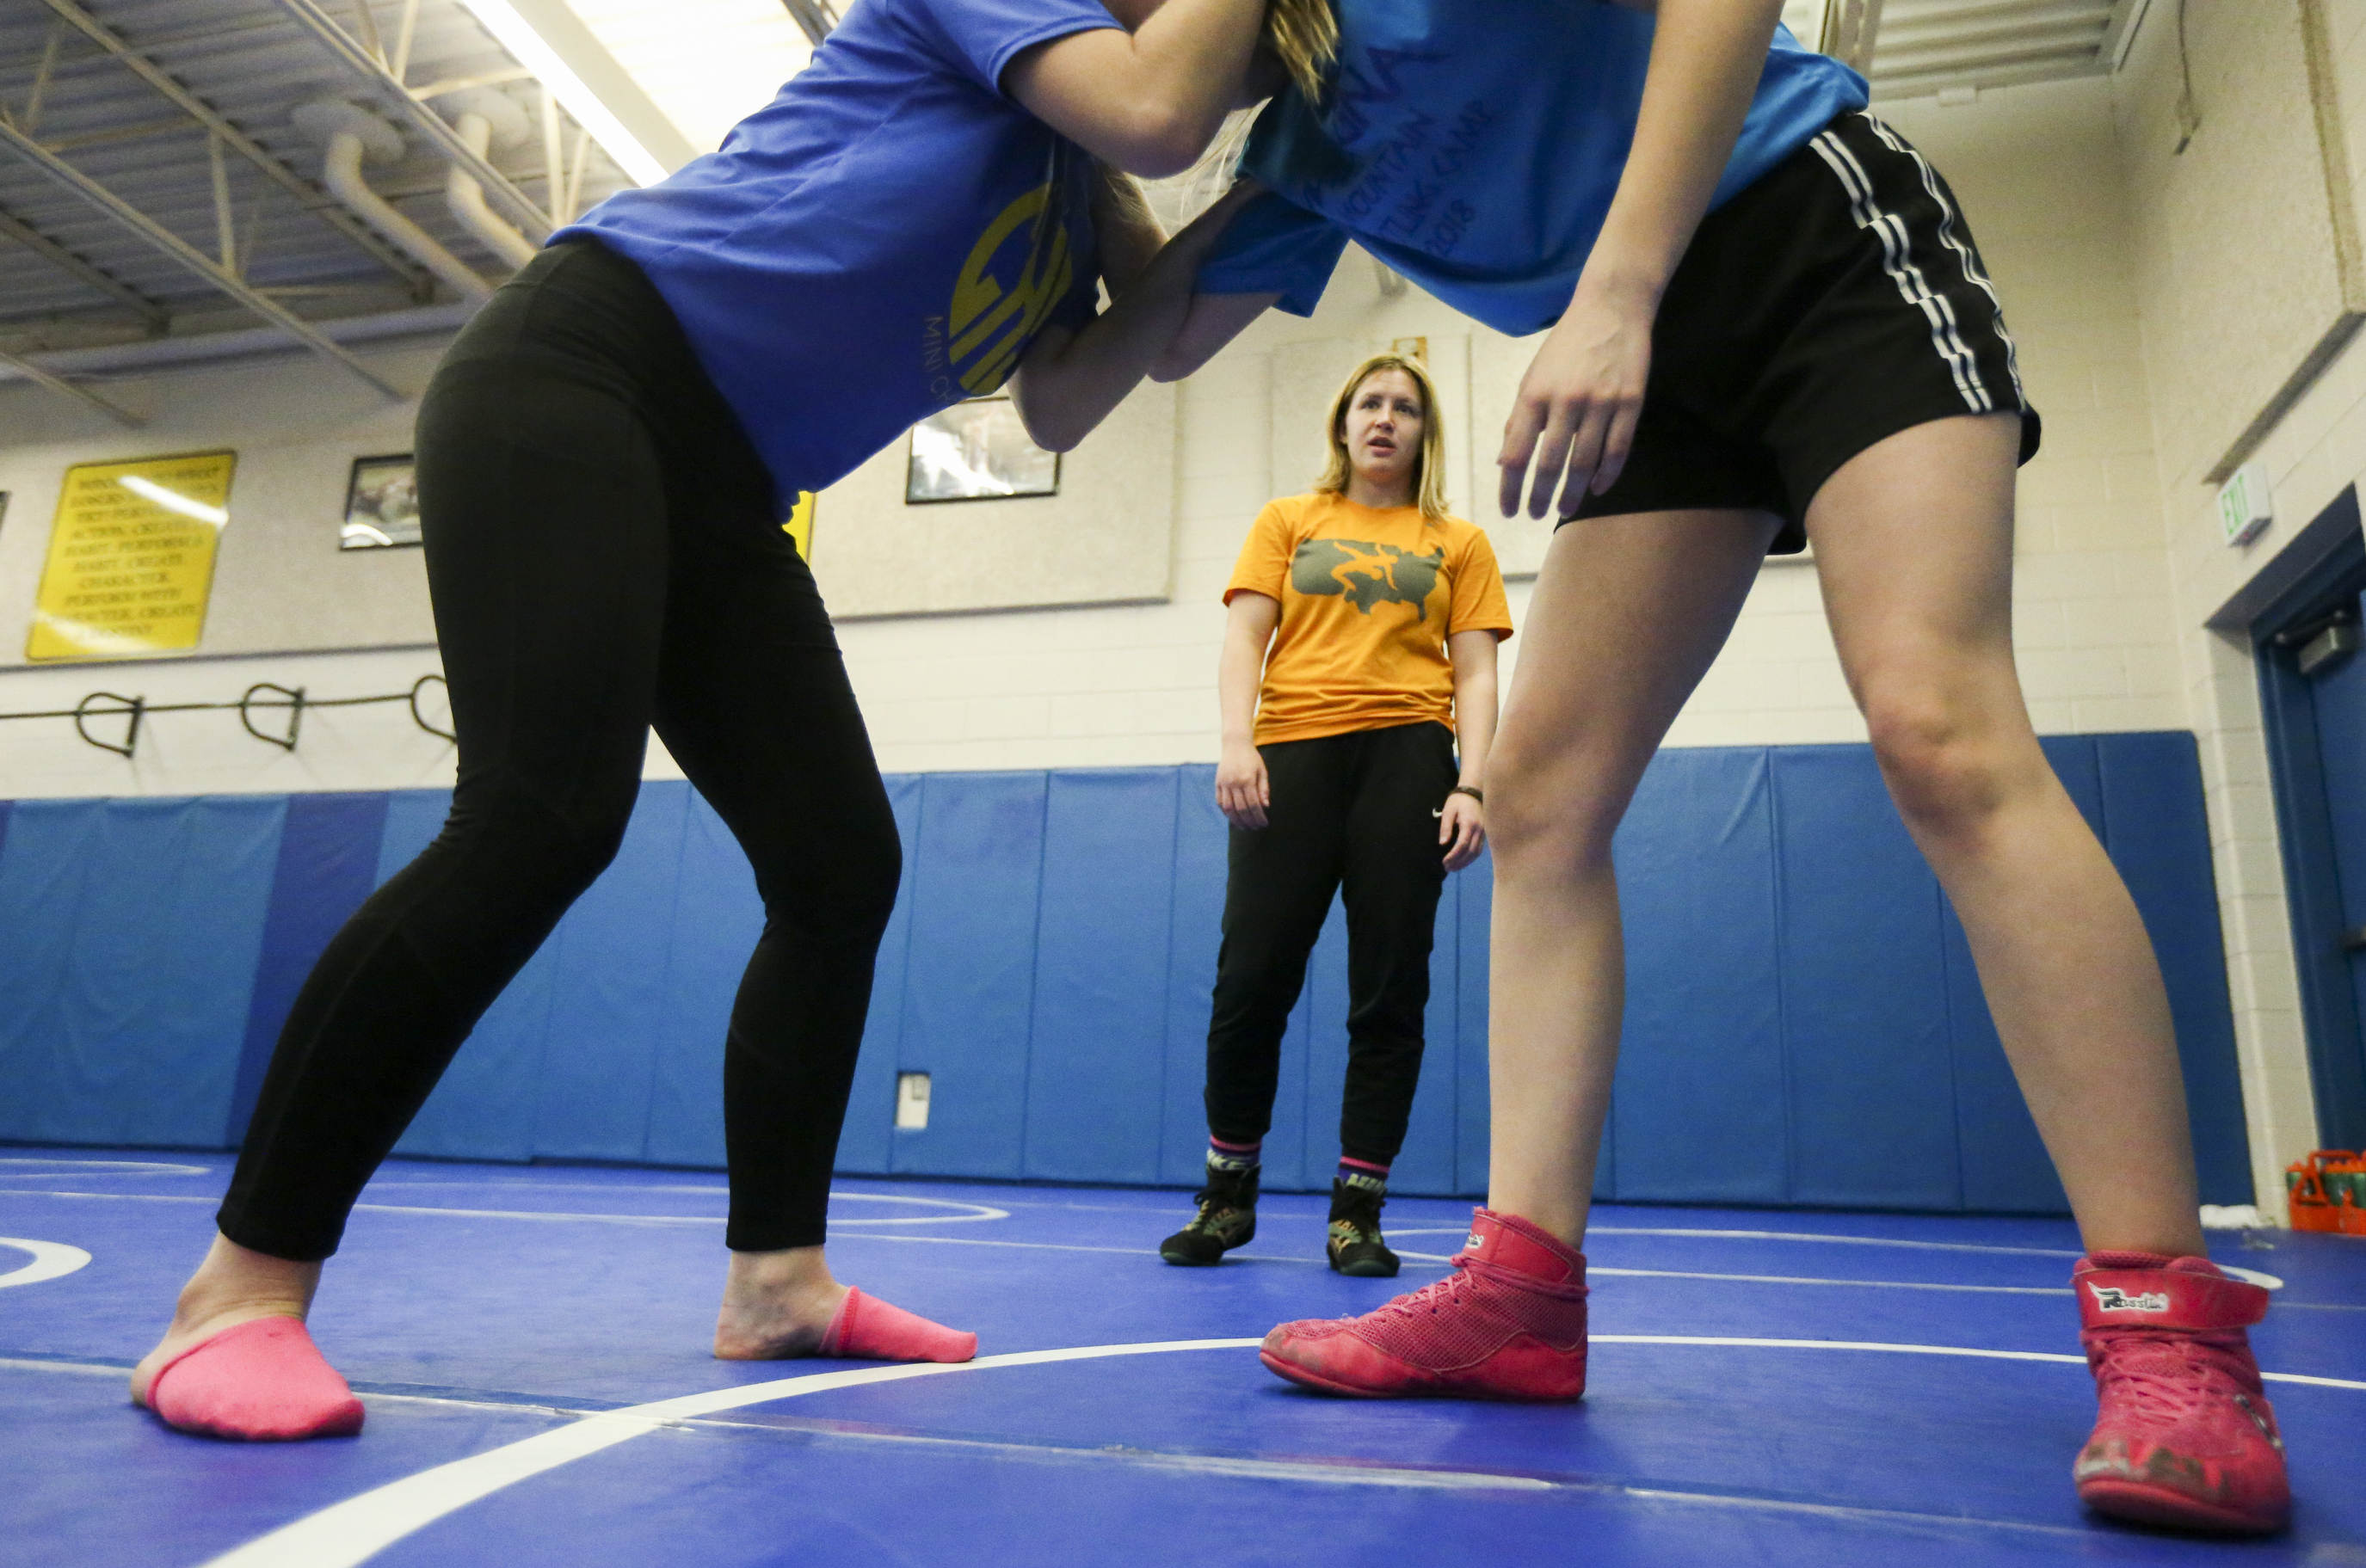 Cyprus High School girls wrestling coach Cara Romeike, center, watches Destinee Cummings, 14, left, and Cheyenne Cummings, 15, work on a move at the Magna school on Wednesday, Nov. 20, 2019.